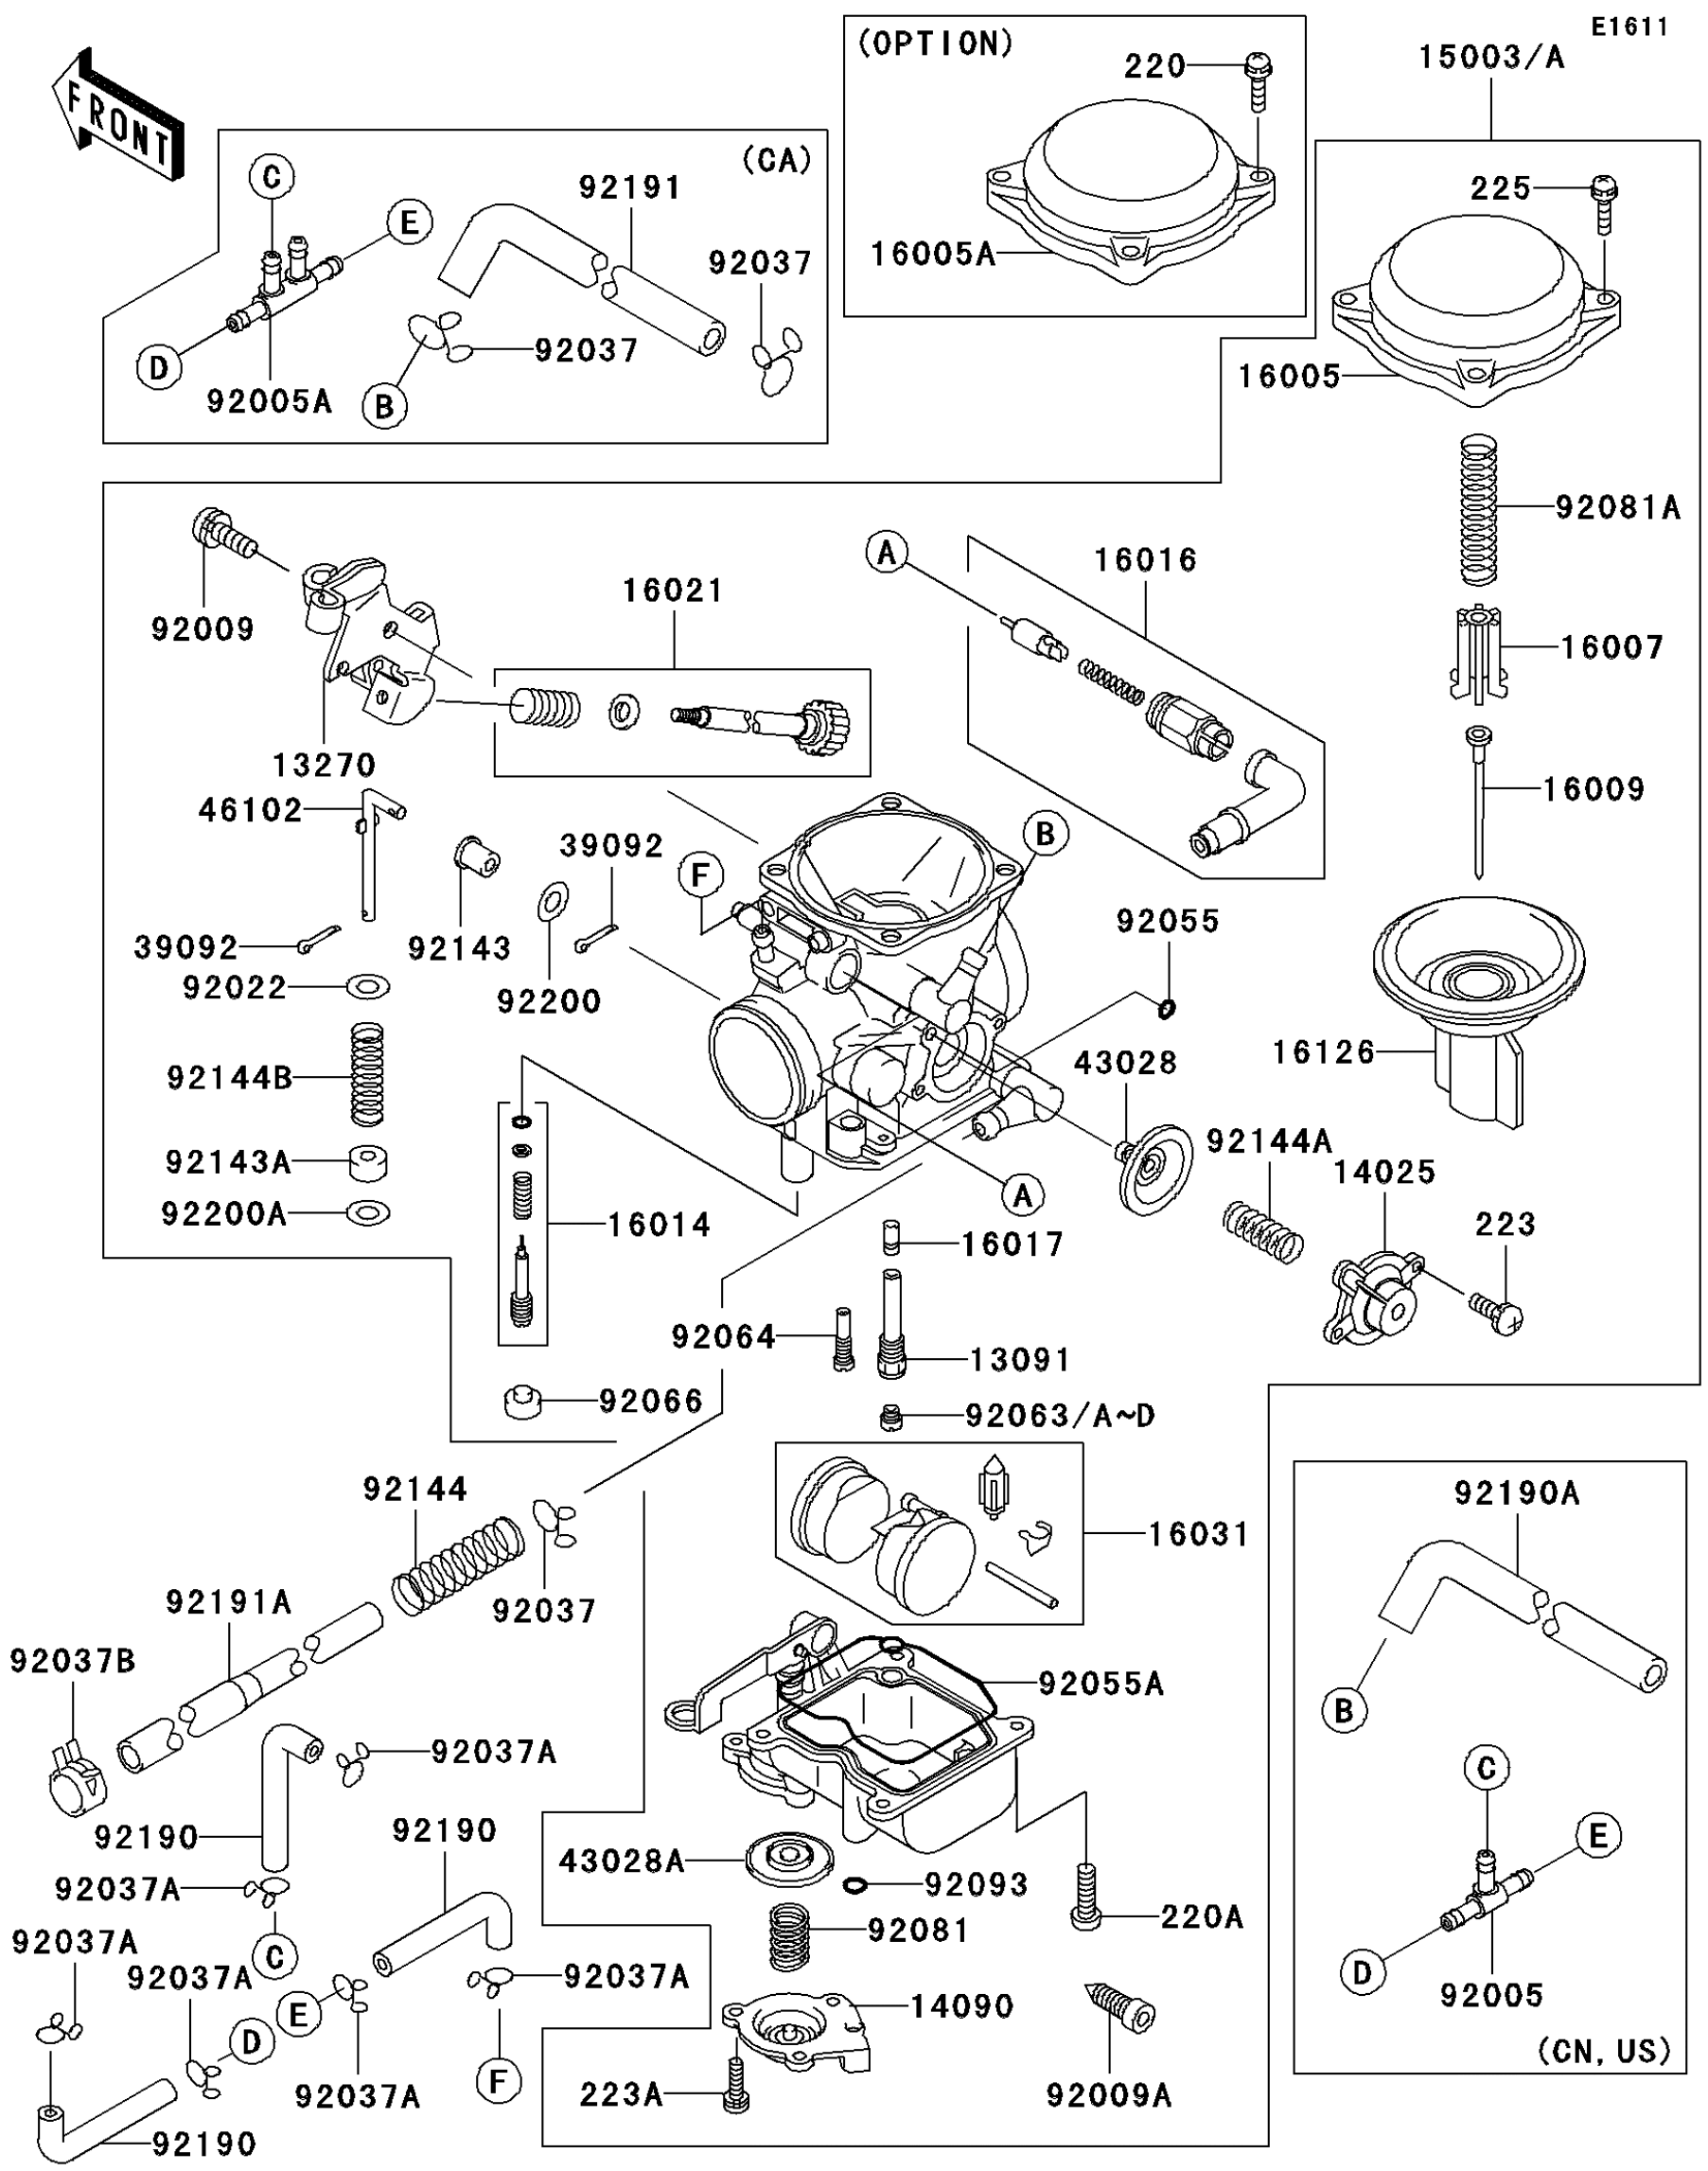 Yamaha V Star Wiring Diagram, Yamaha, Free Engine Image